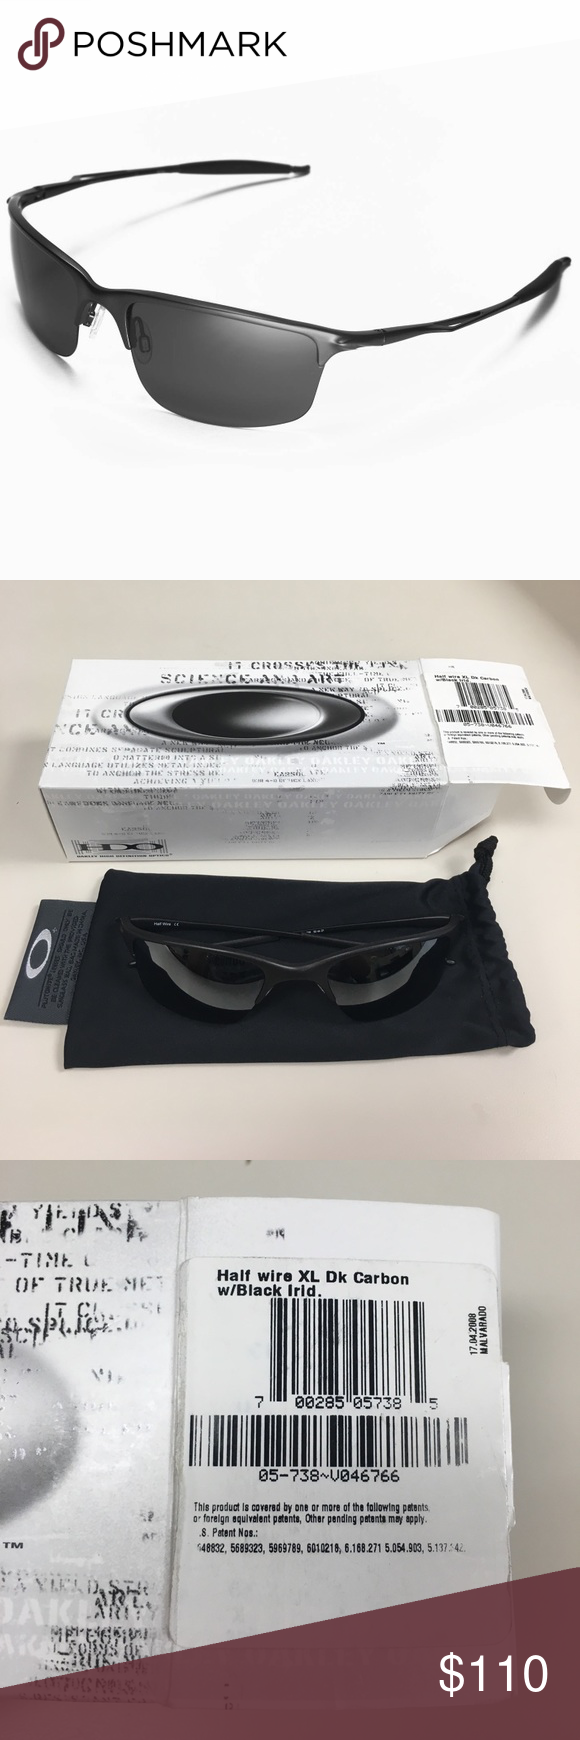 NEW IN BOX Oakley Half Wire XL Black Sunglasses | Black sunglasses ...